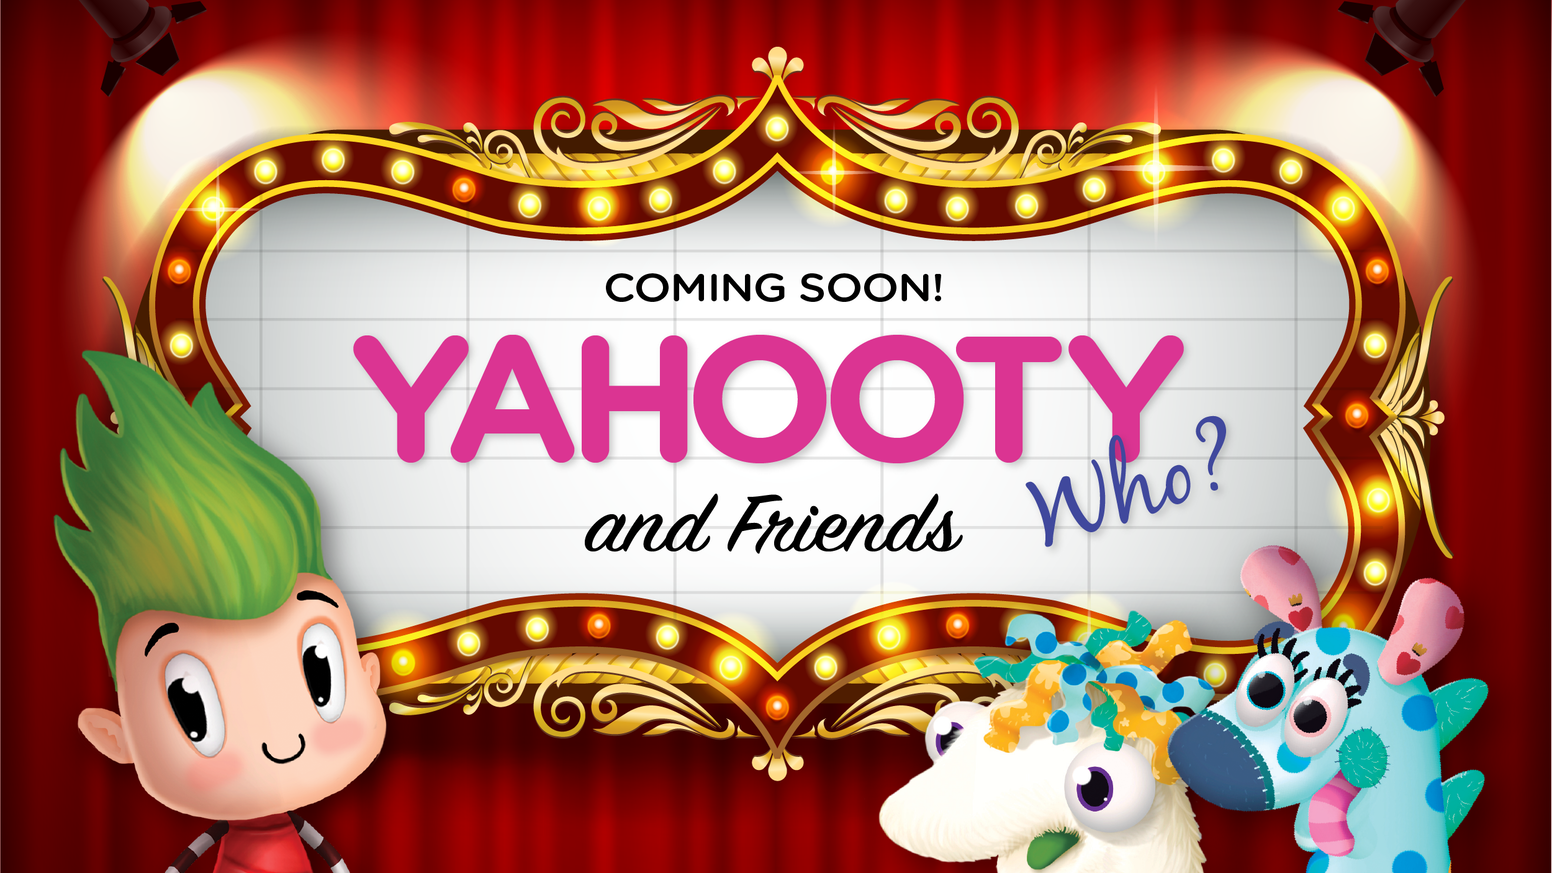 We did it! Watch out bright lights and big city, Yahooty Who? is creating an animation and releasing 2 new book titles.